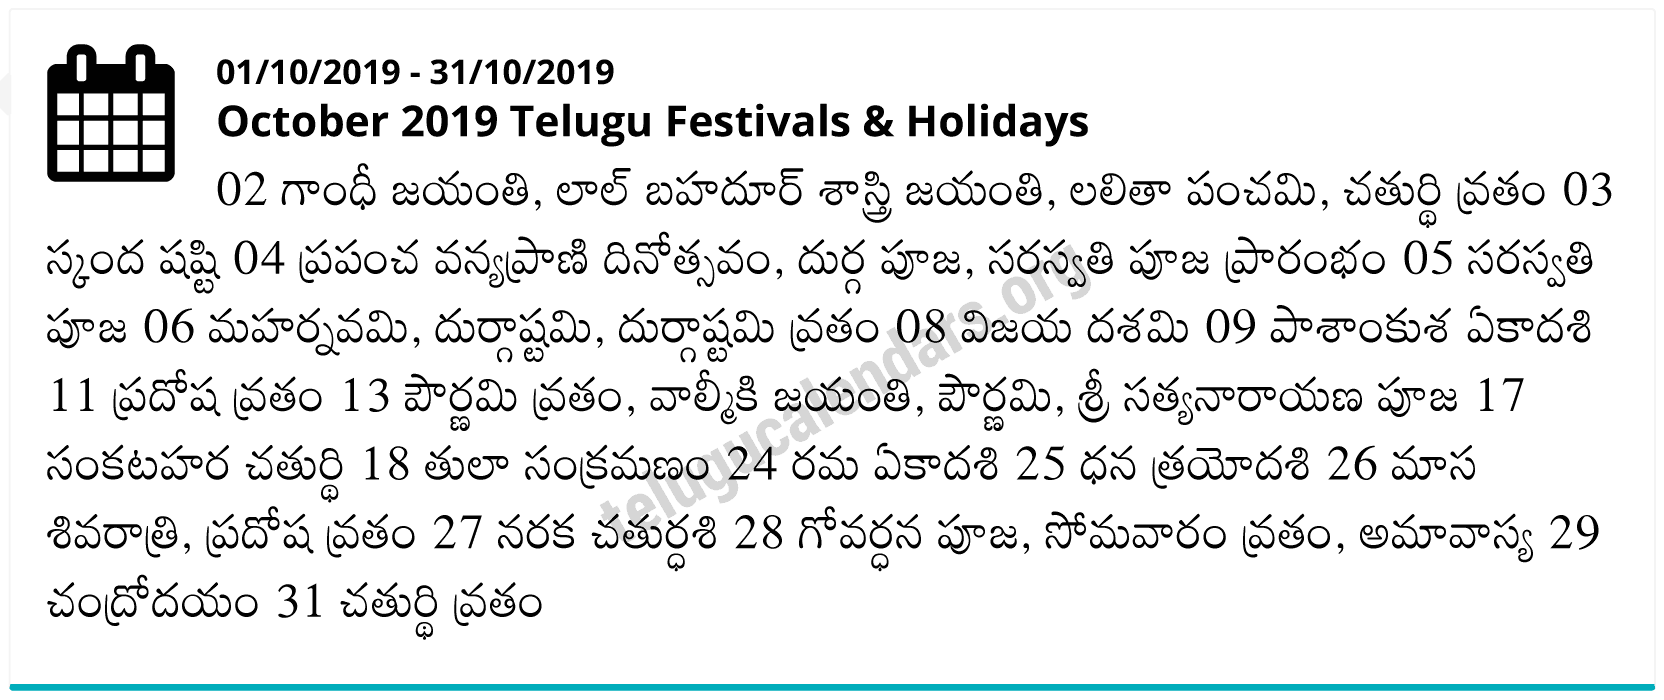 Telugu Festivals 2019 October (IST)